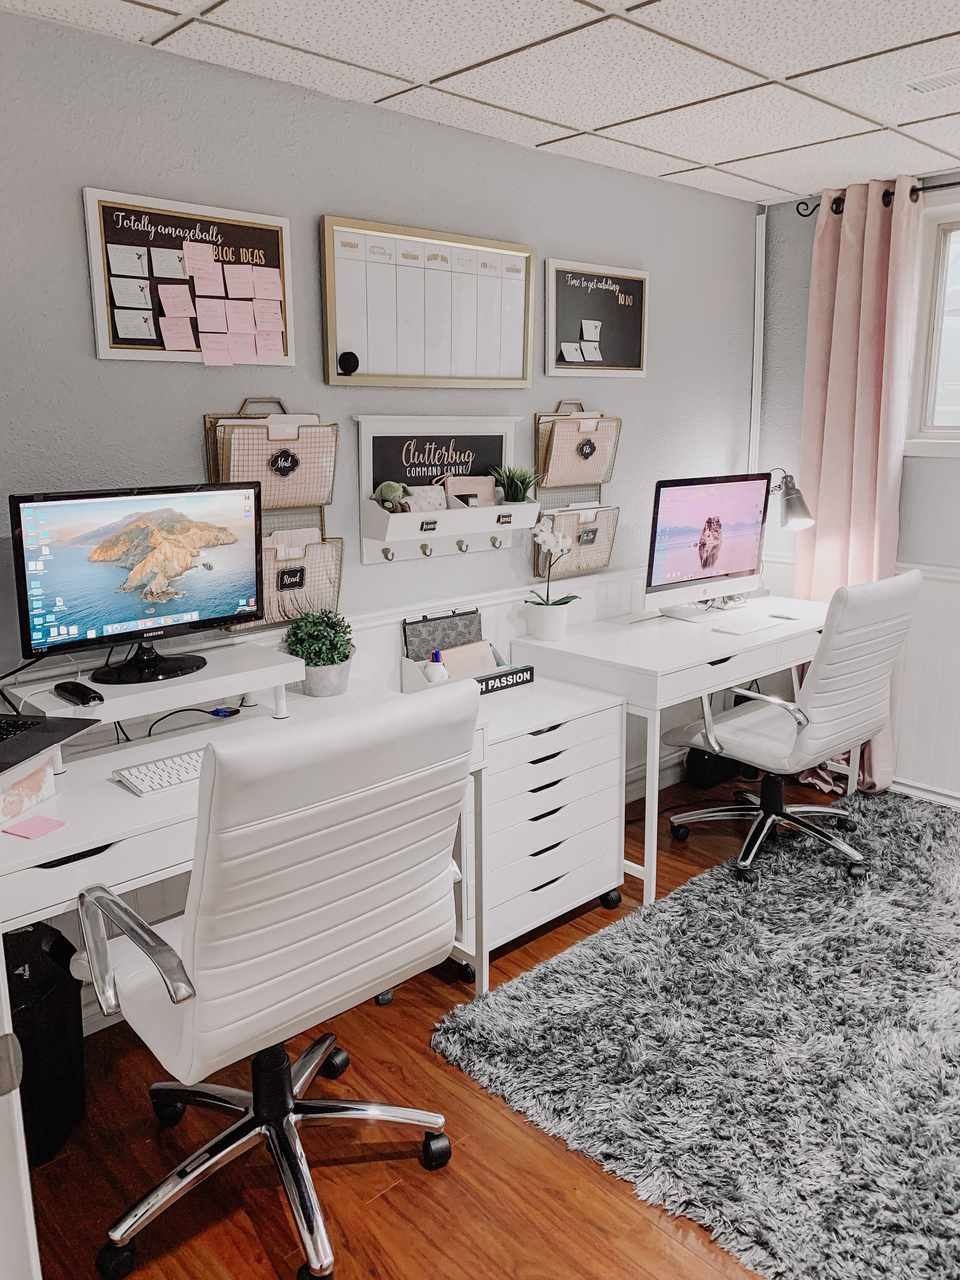 Clutterbug office organization with two whit side-by-side desks